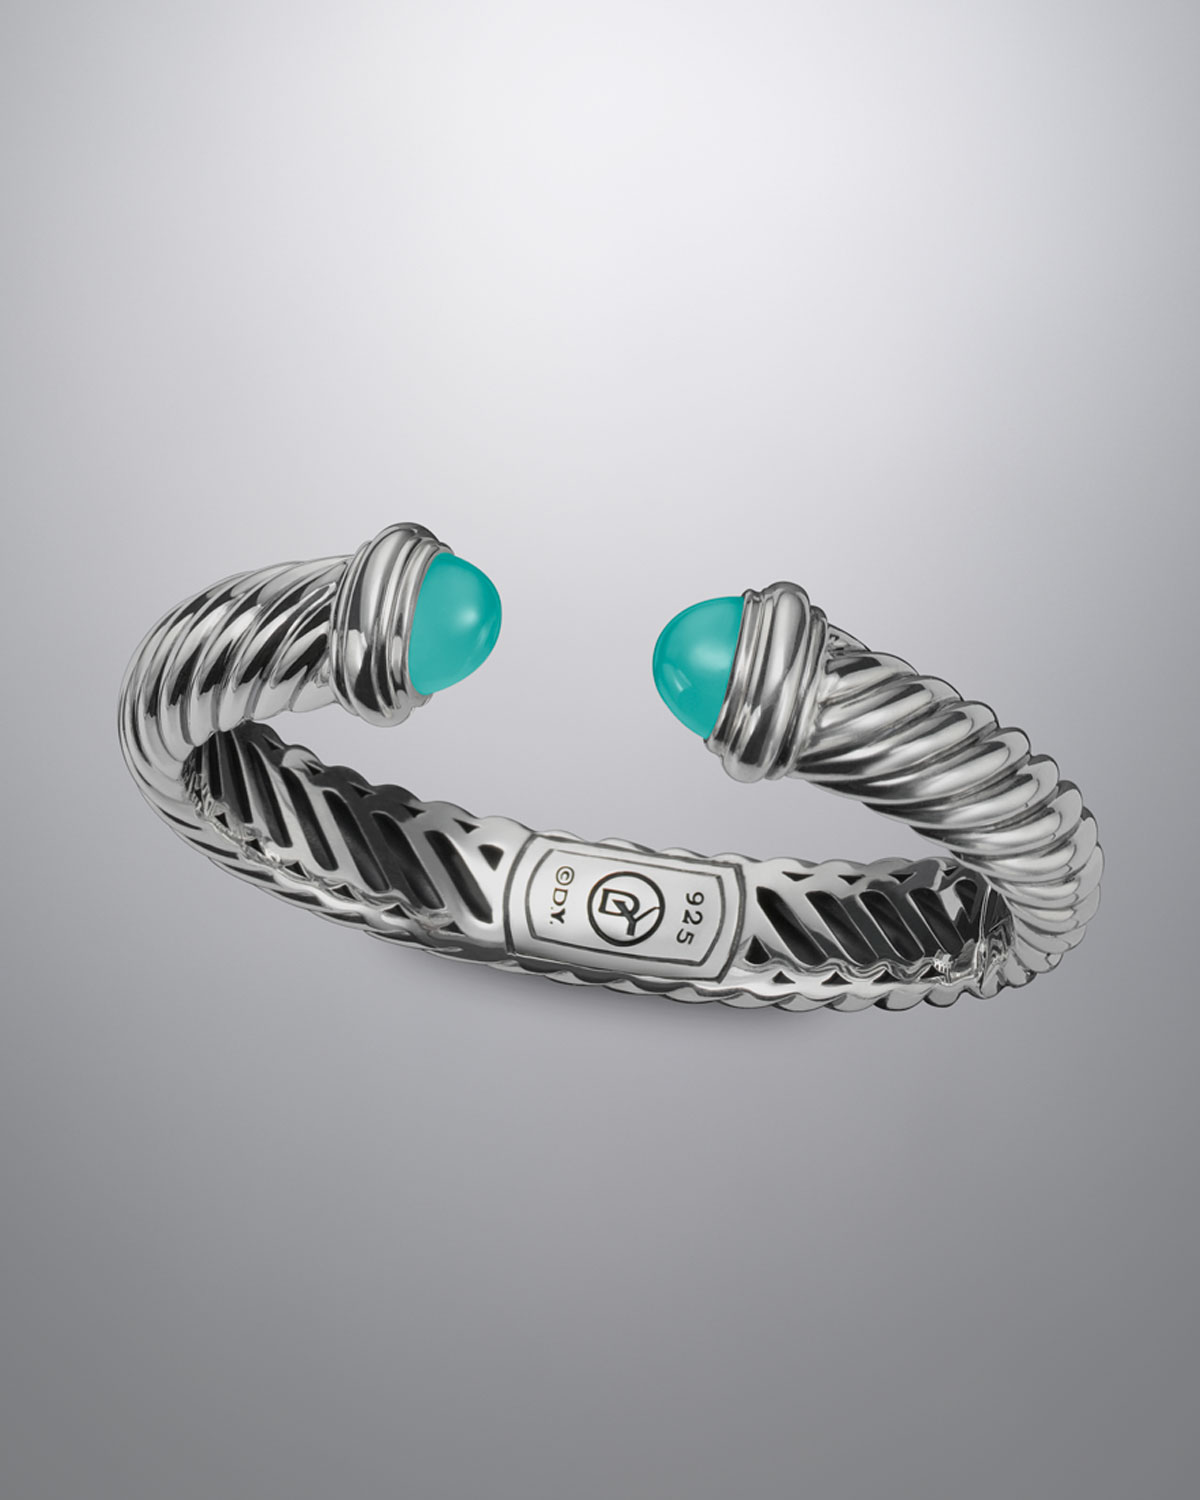 David yurman 10x5mm aqua chalcedony waverly bracelet in for David yurman like bracelets